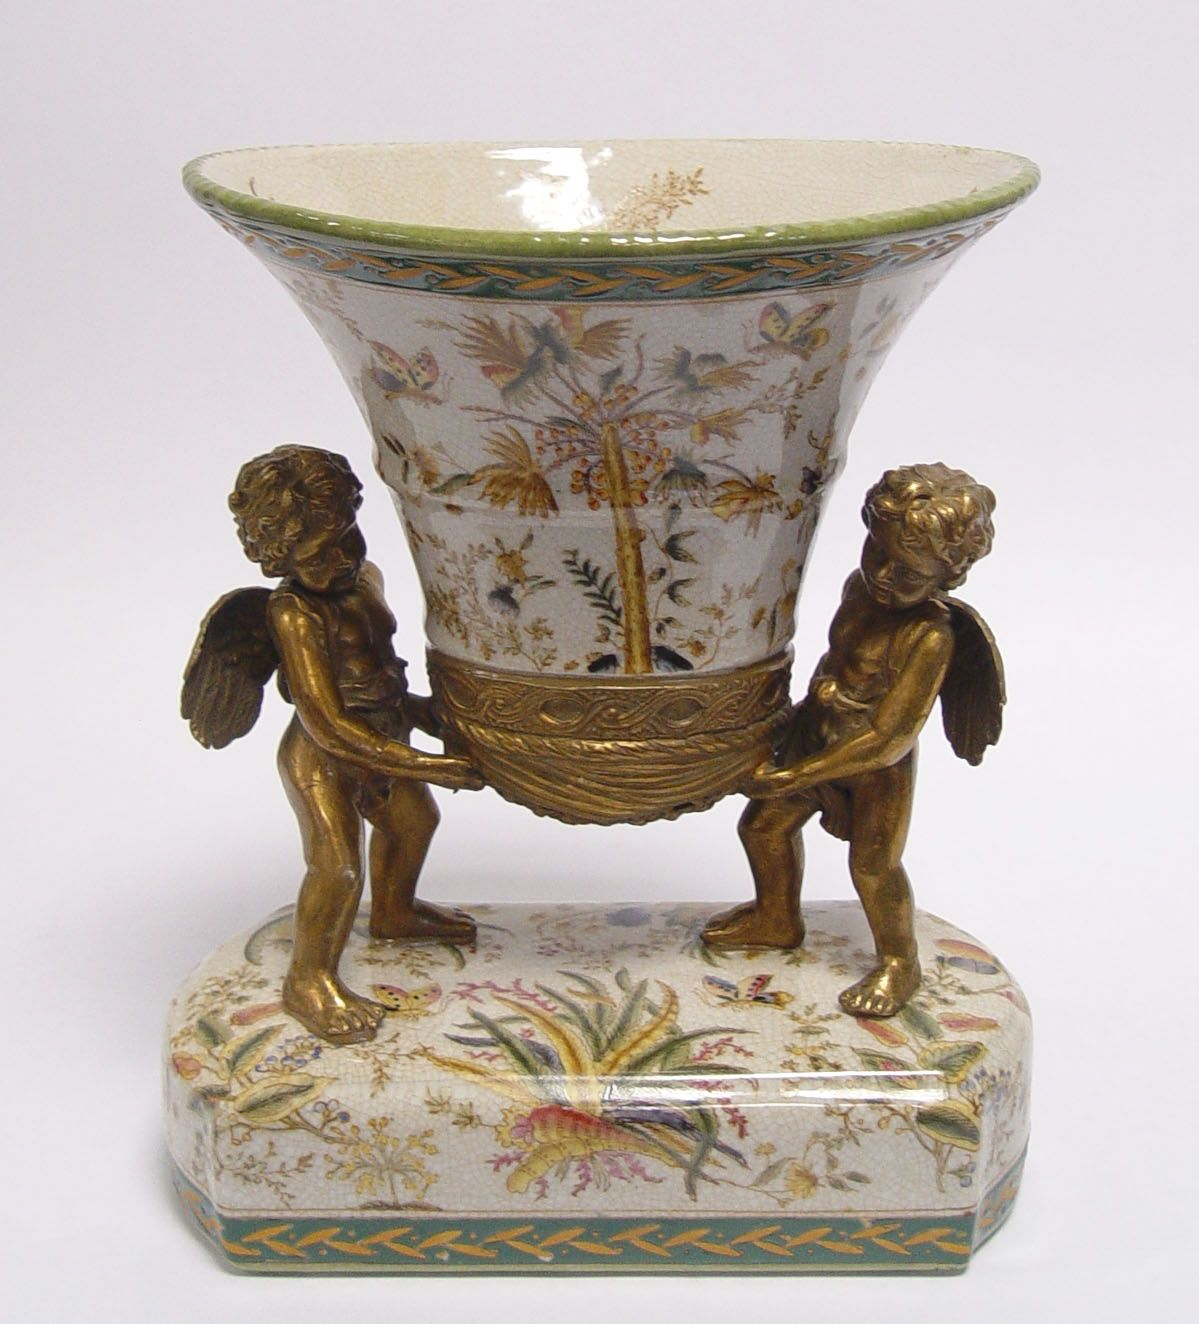 a Vase with angels made of porcelain BrokInCZ